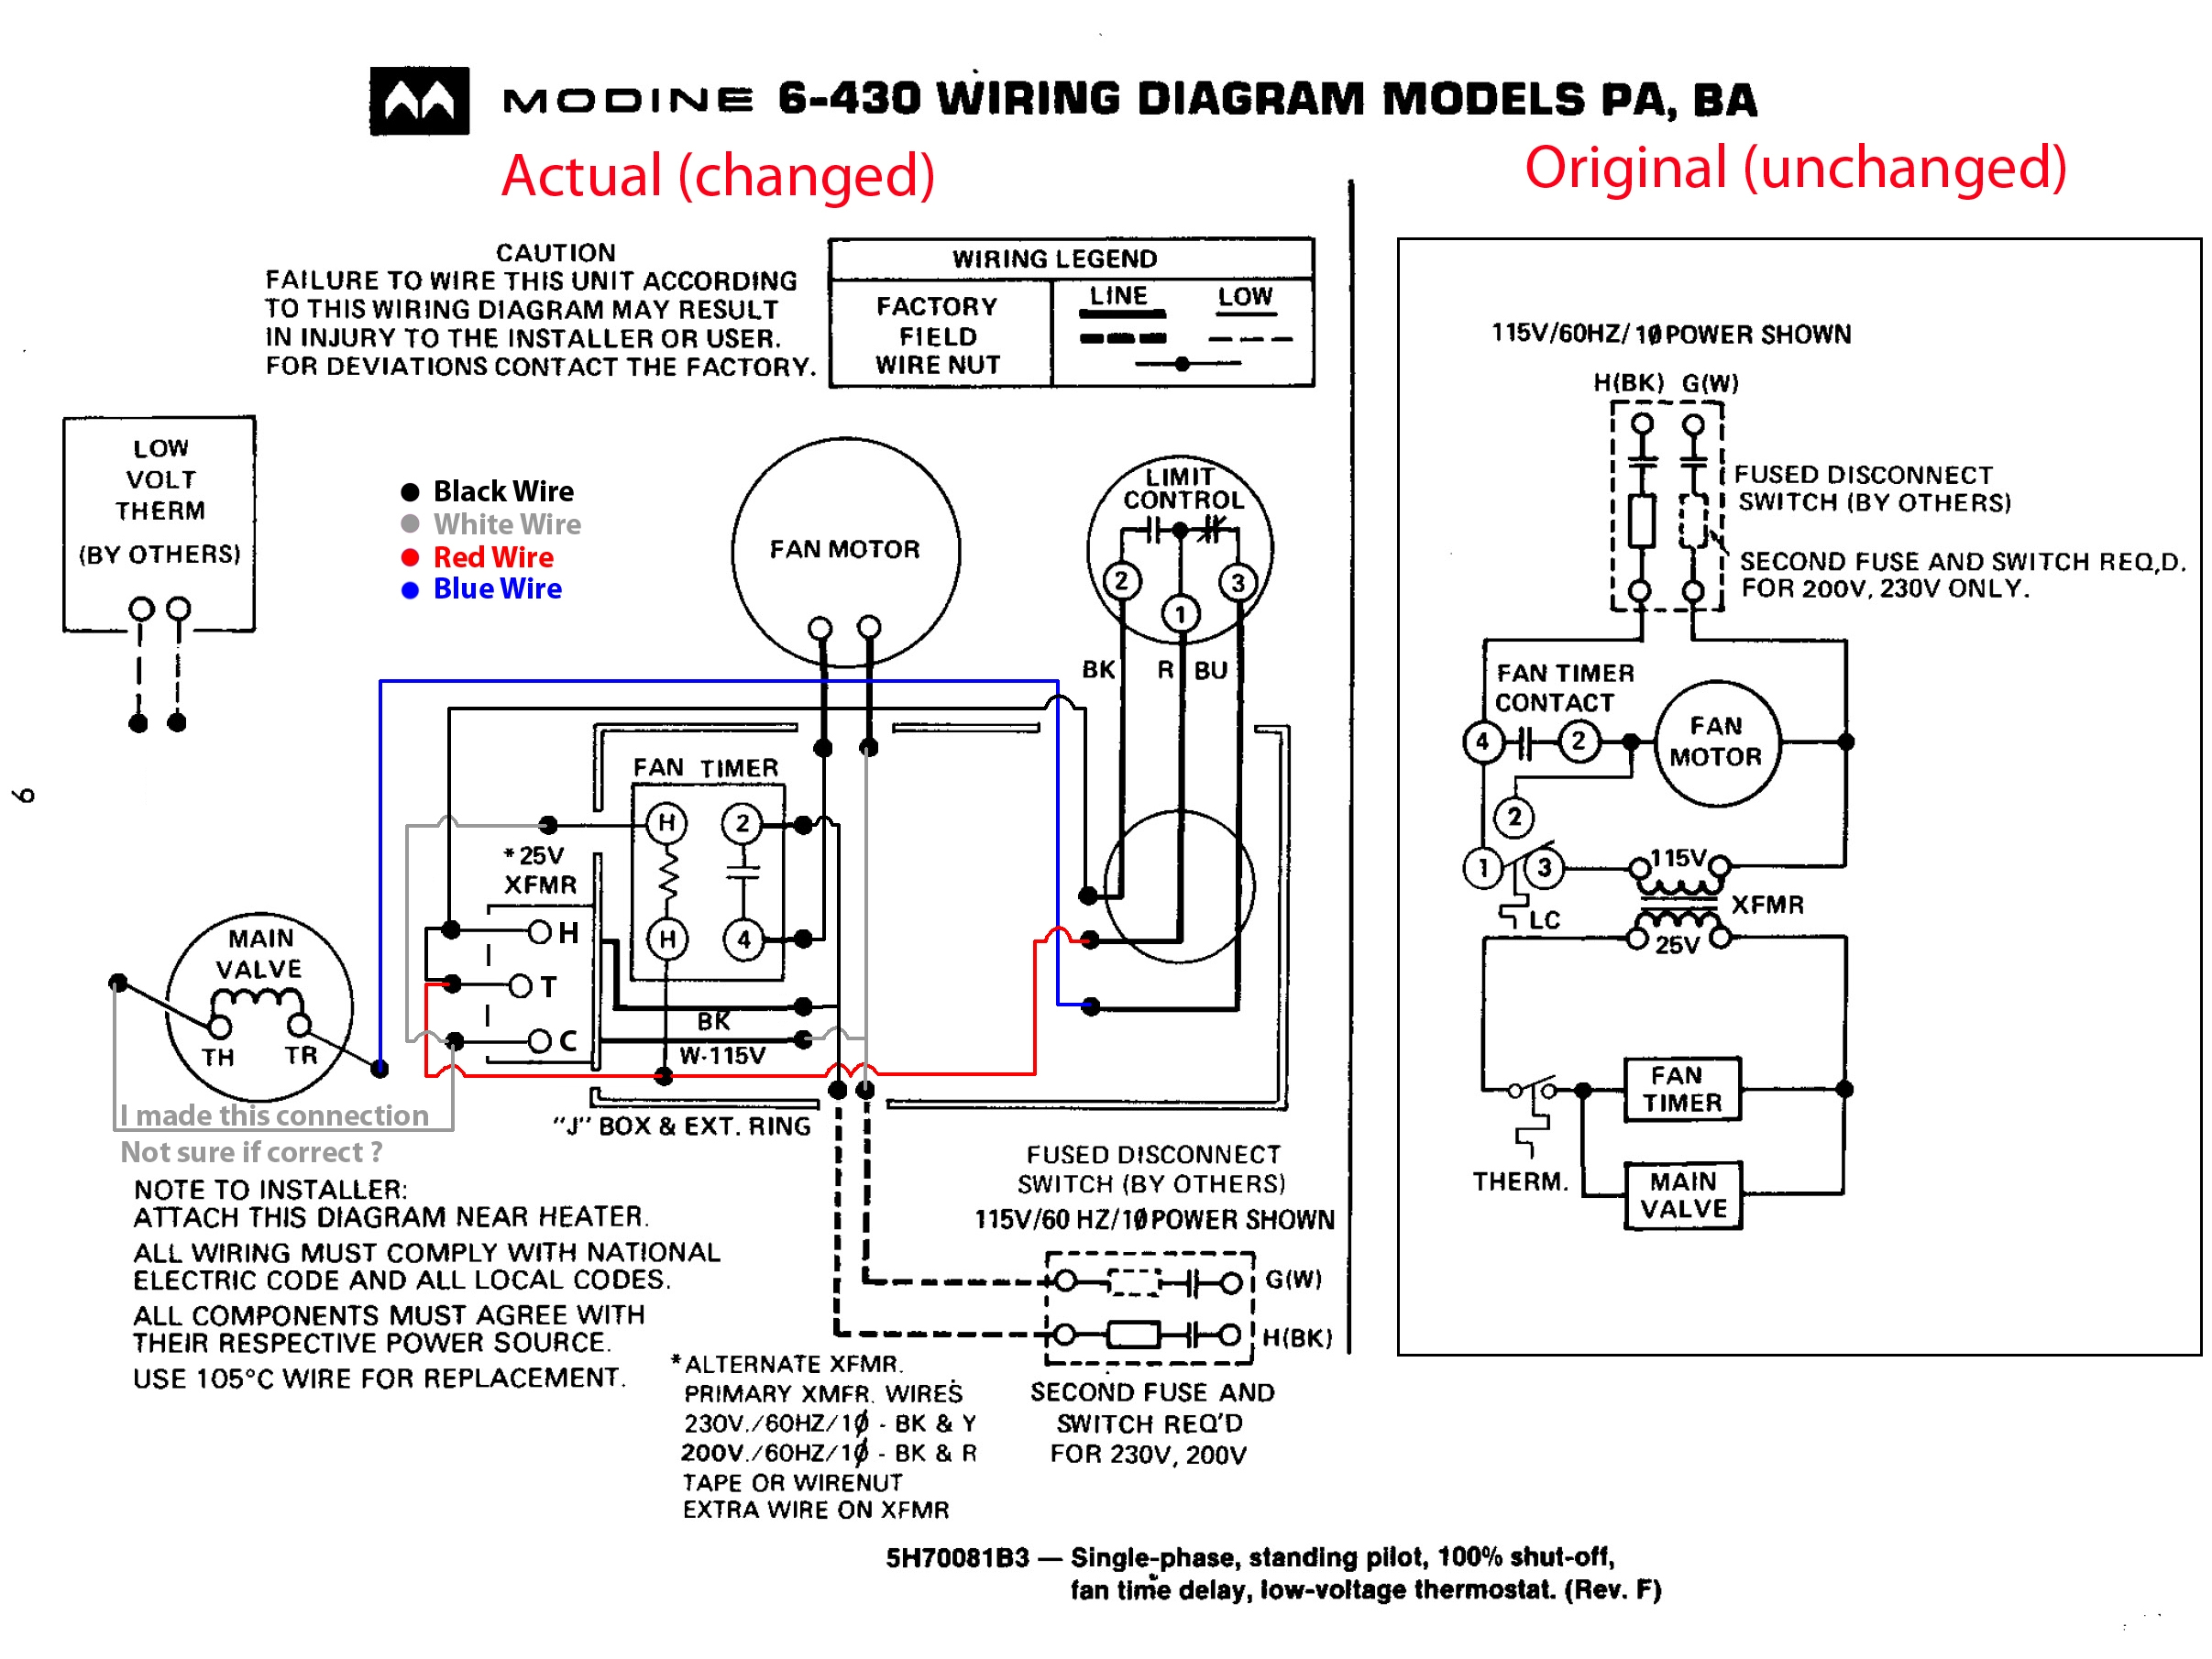 Heat Surge Wiring Diagram